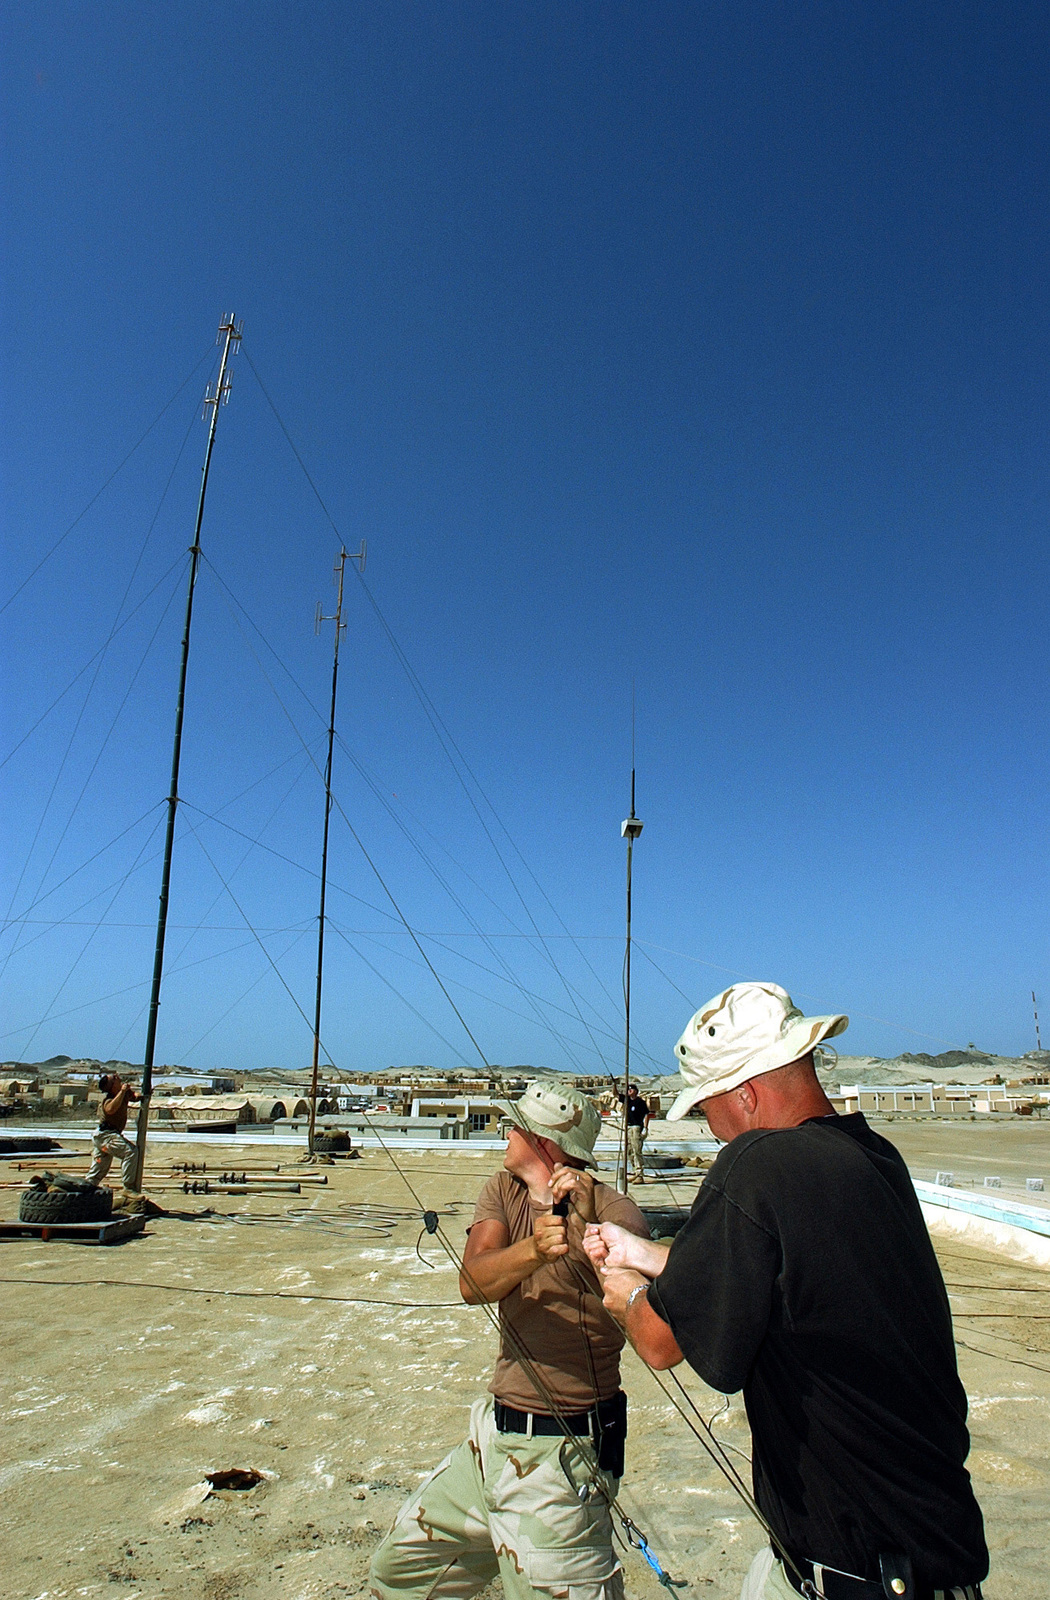 US Air Force (USAF) SENIOR AIRMAN (SRA) John Goll, left and STAFF Sergeant (SSGT) Mitchell Mason, wideband satellite journeyman assigned to the 321st Expeditionary Communications Squadron (ECS), raise the second of five Very High Frequency (VHF) 60-foot masts at a forward-deployed location, in support of Operation ENDURING FREEDOM